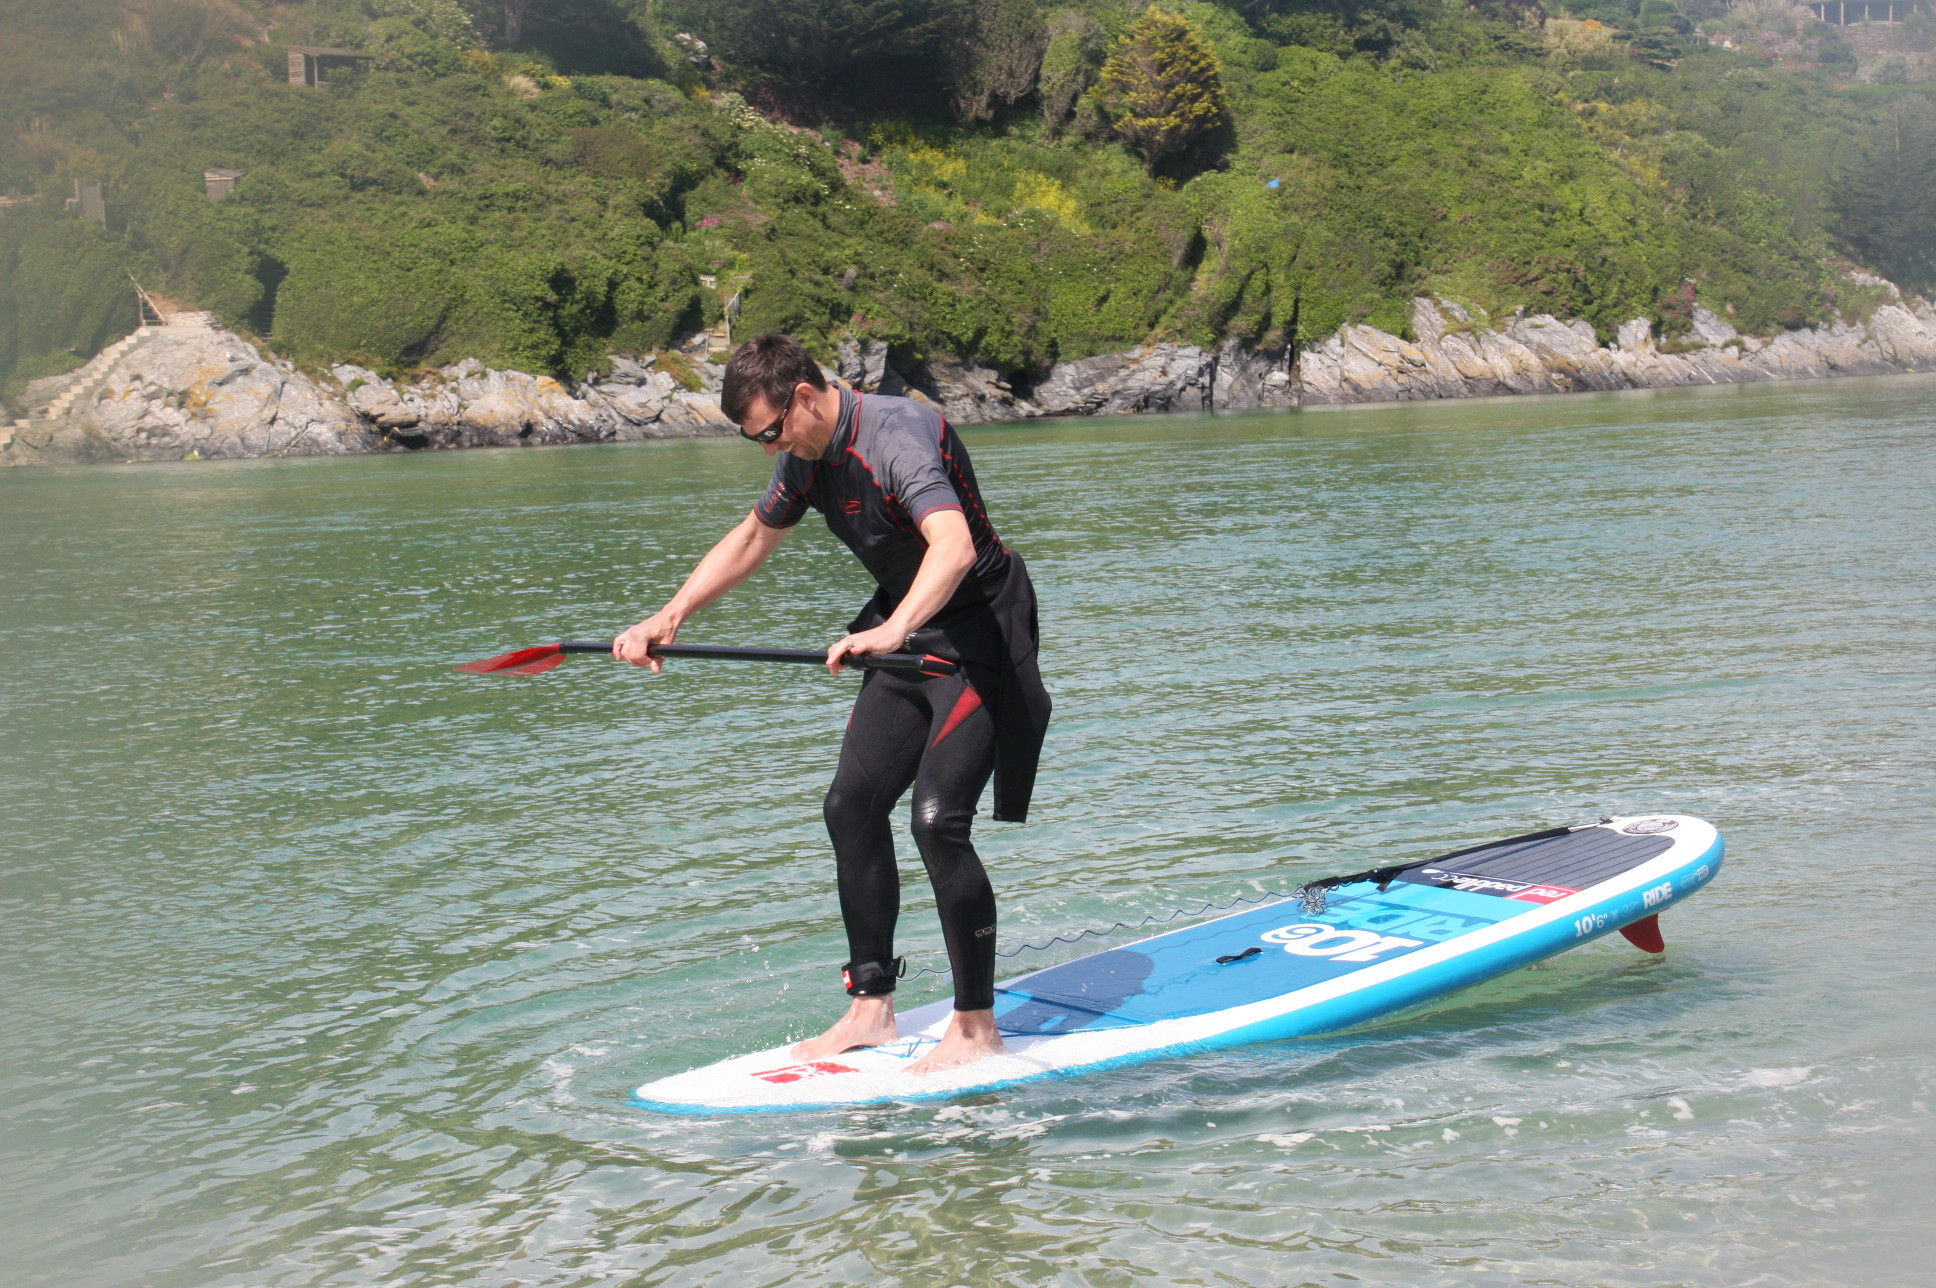 Just a little further - Crantock SUP Hire & Tours